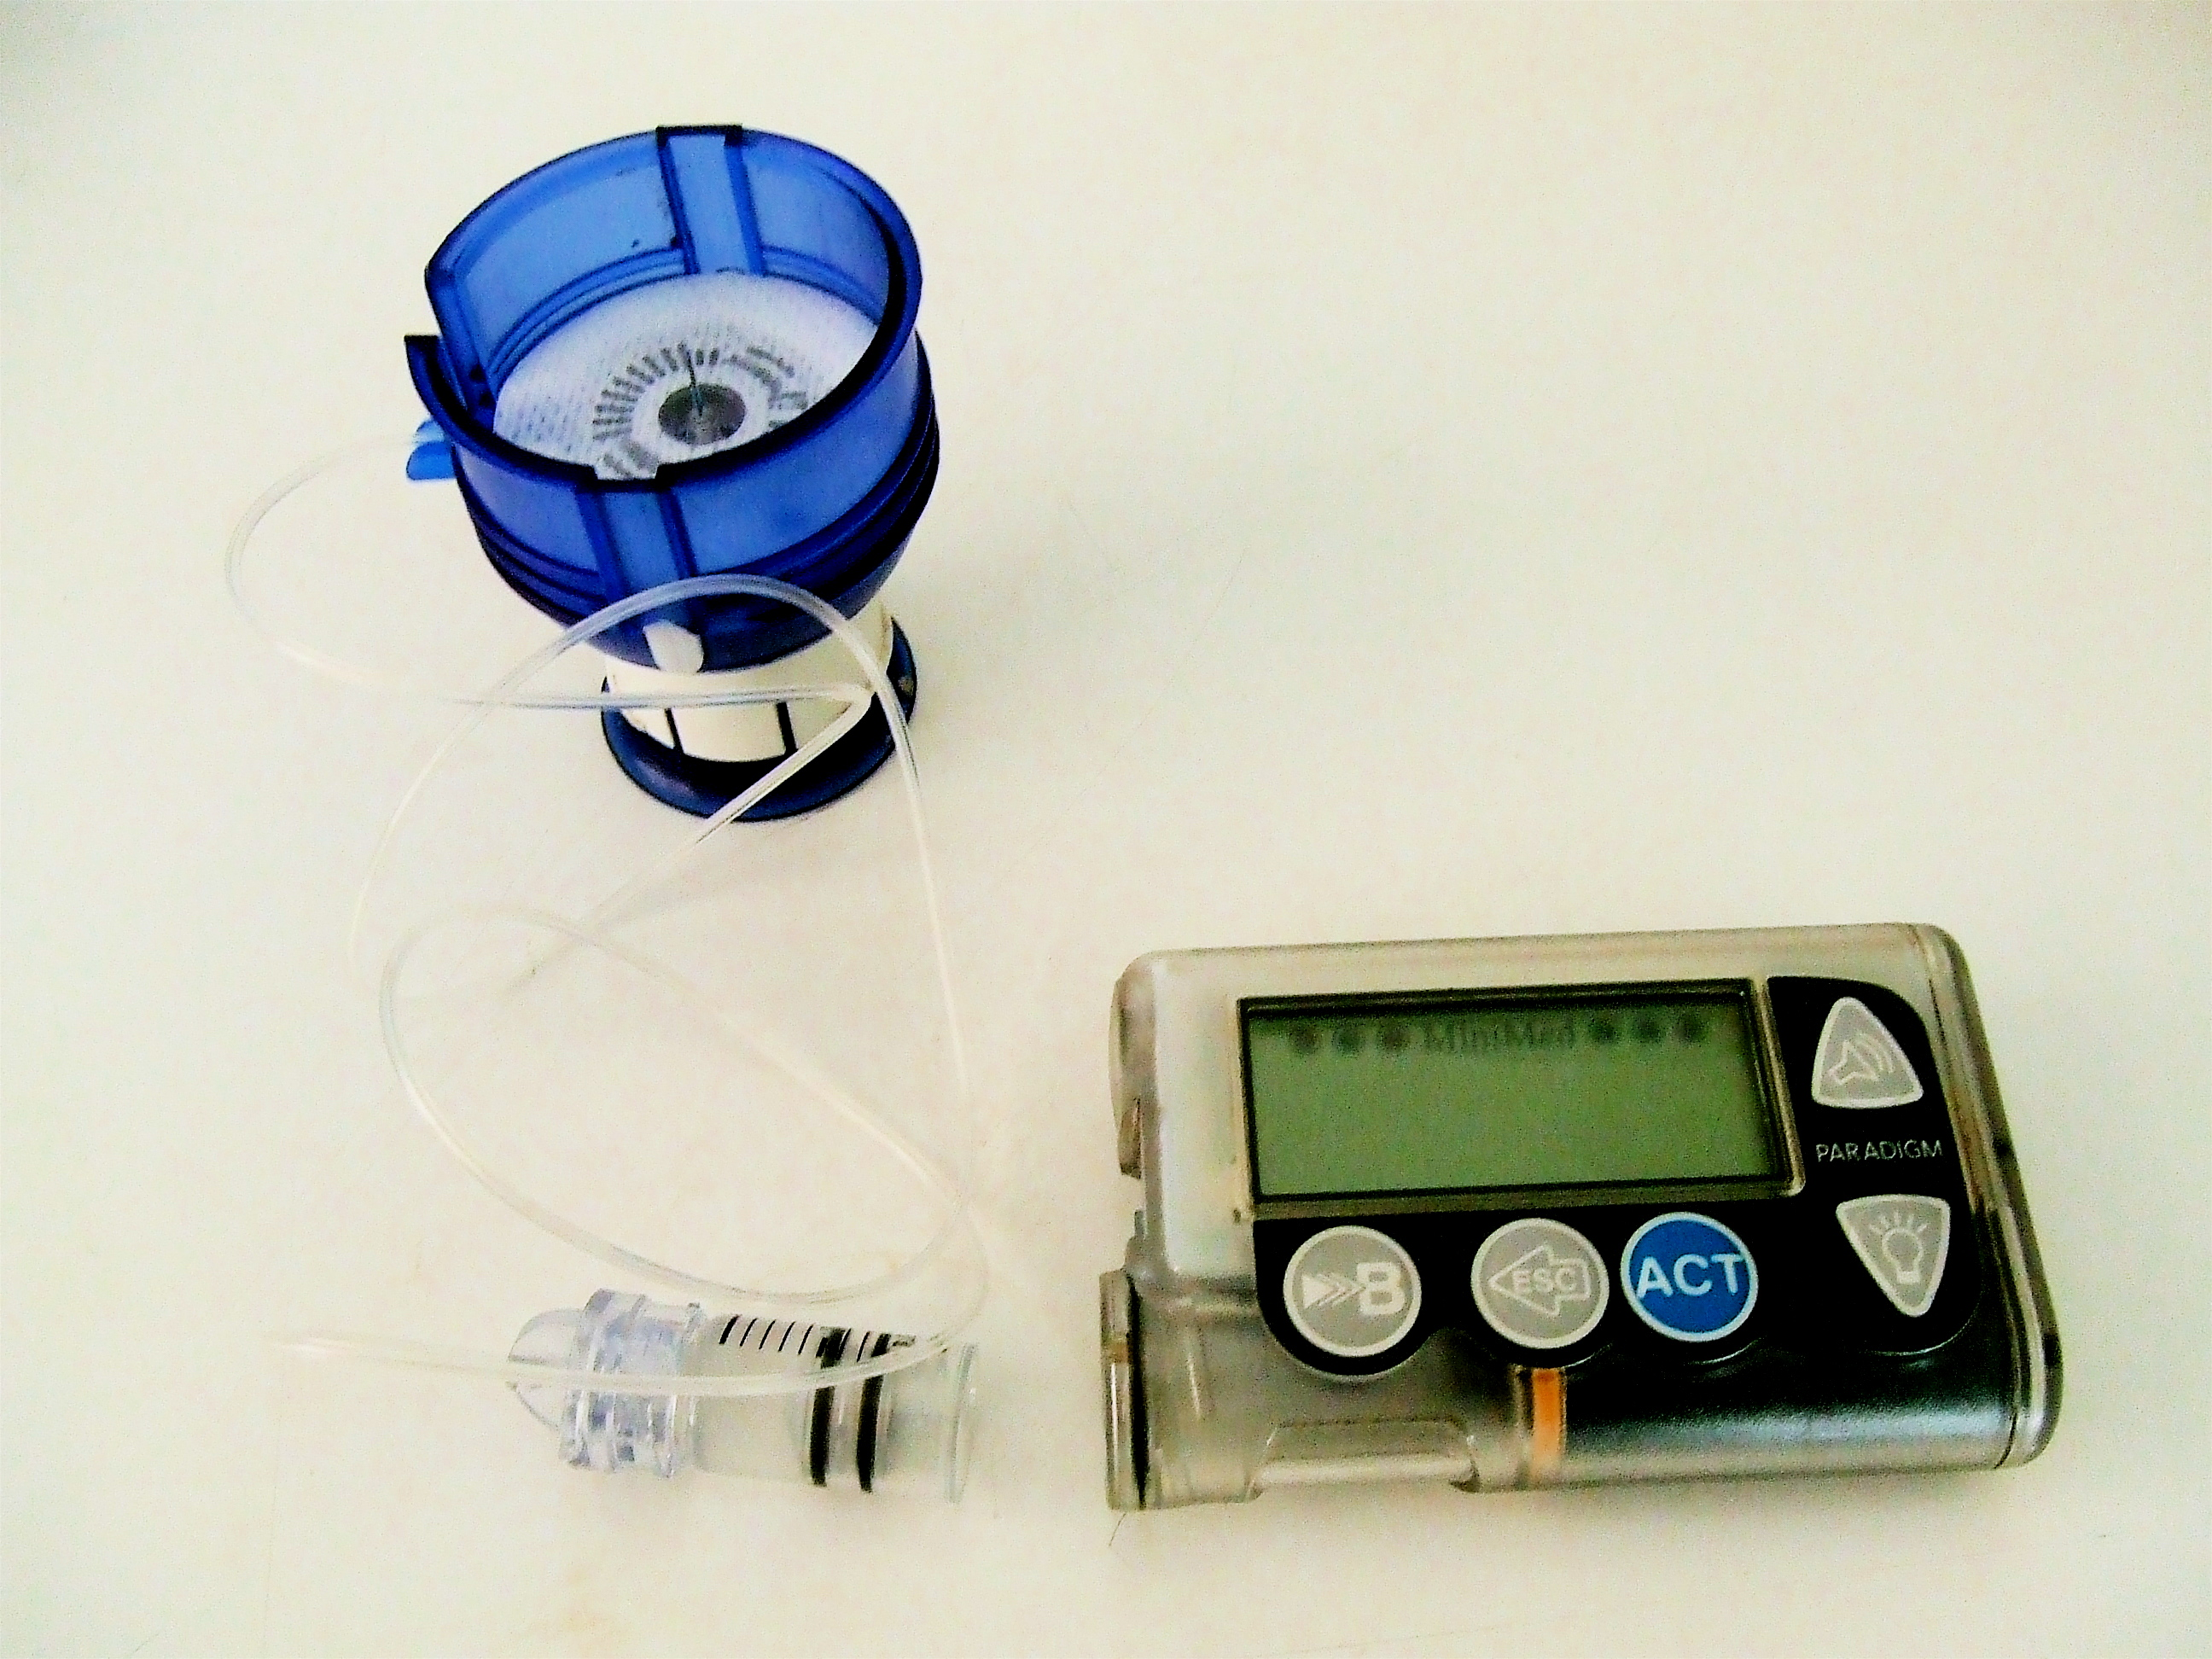 Infusion Set Comparison Showing an Infusion Set